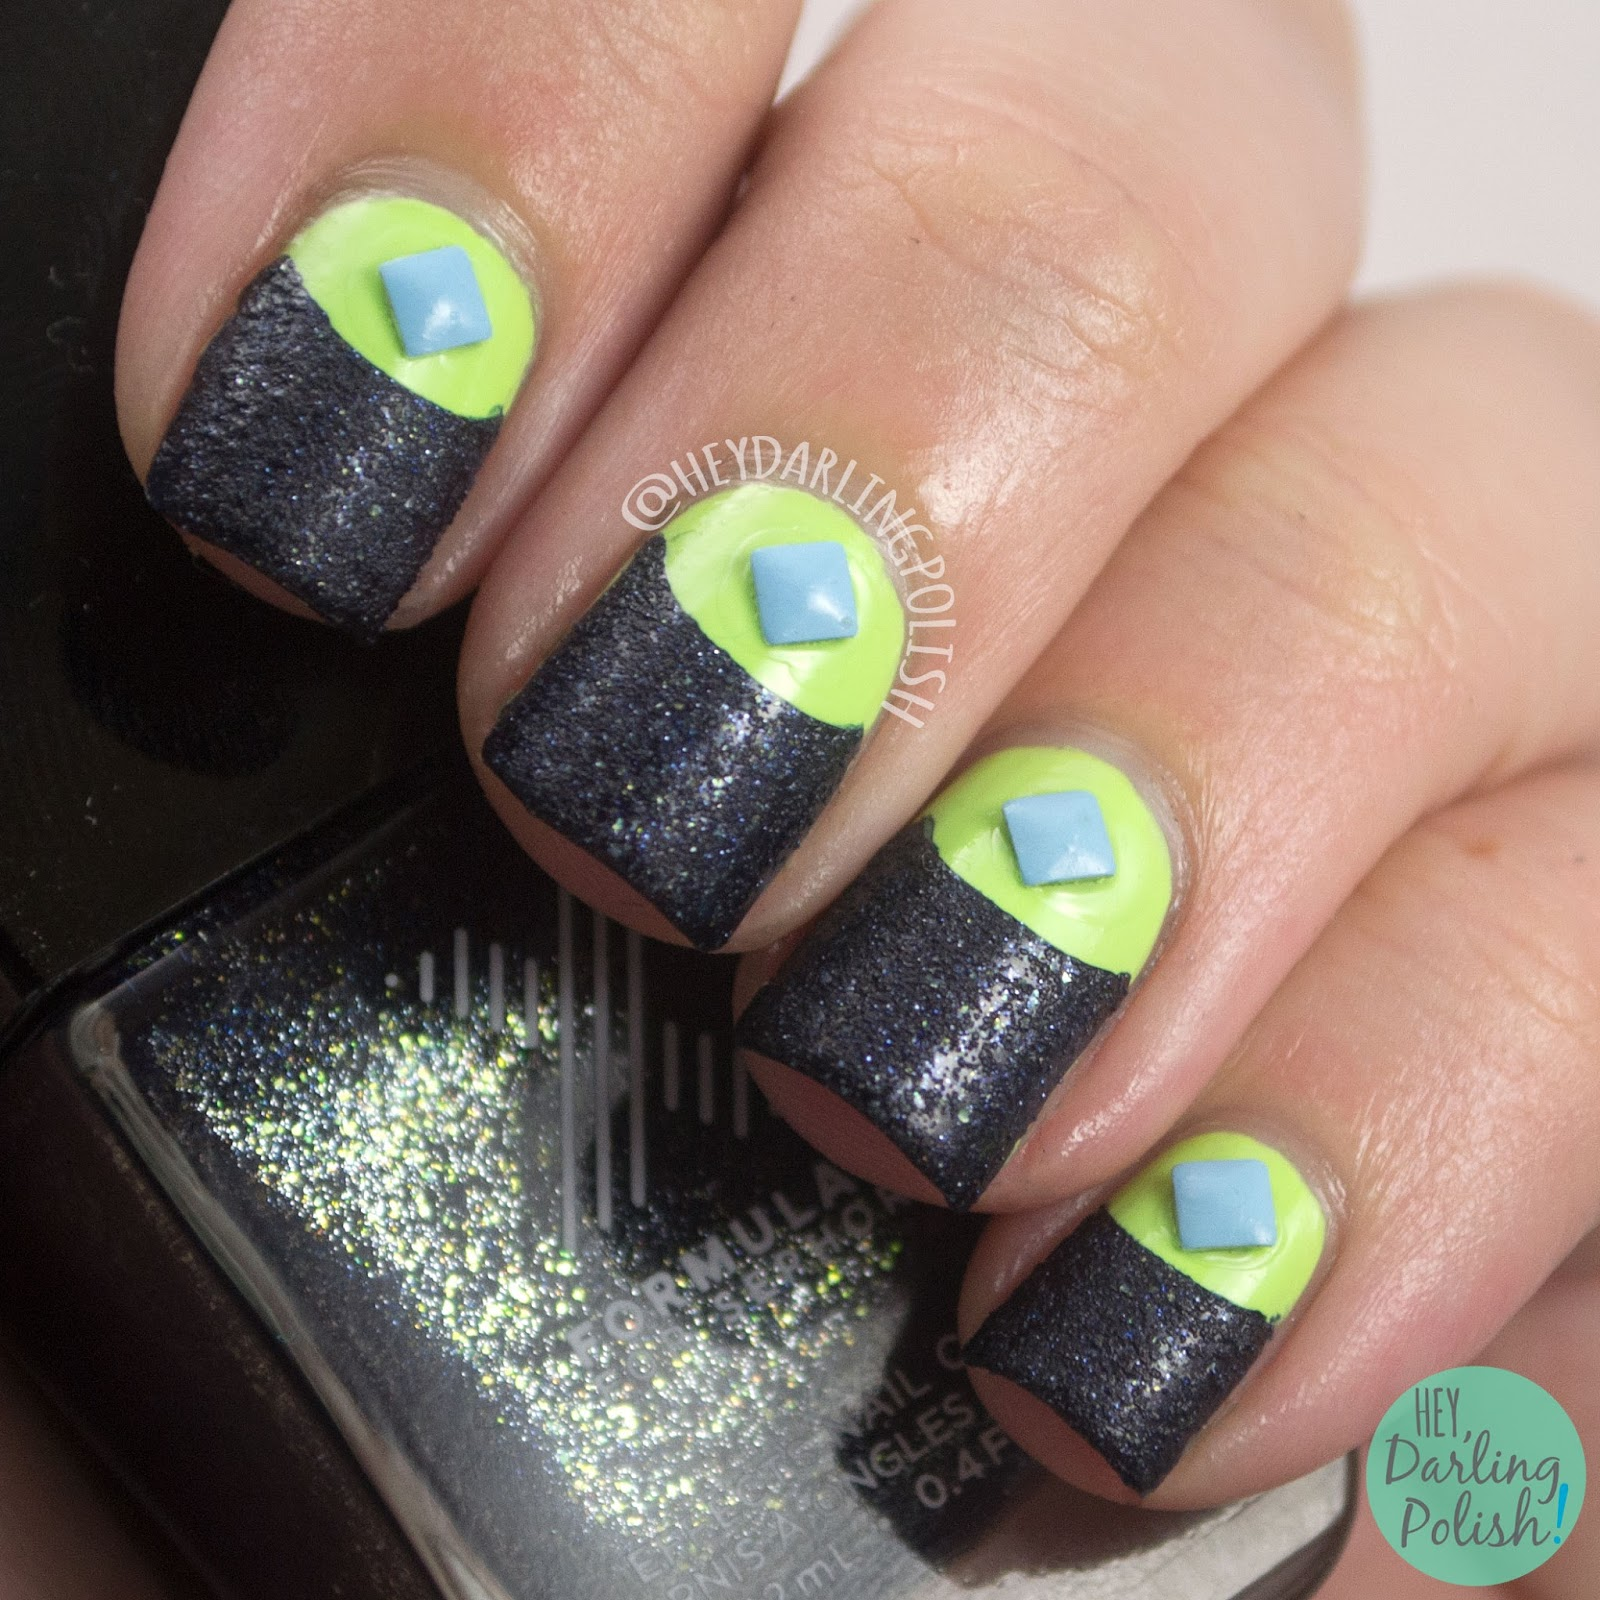 nails, nail art, nail polish, textured, studs, half moon, hey darling polish, naillinkup, green, blue,